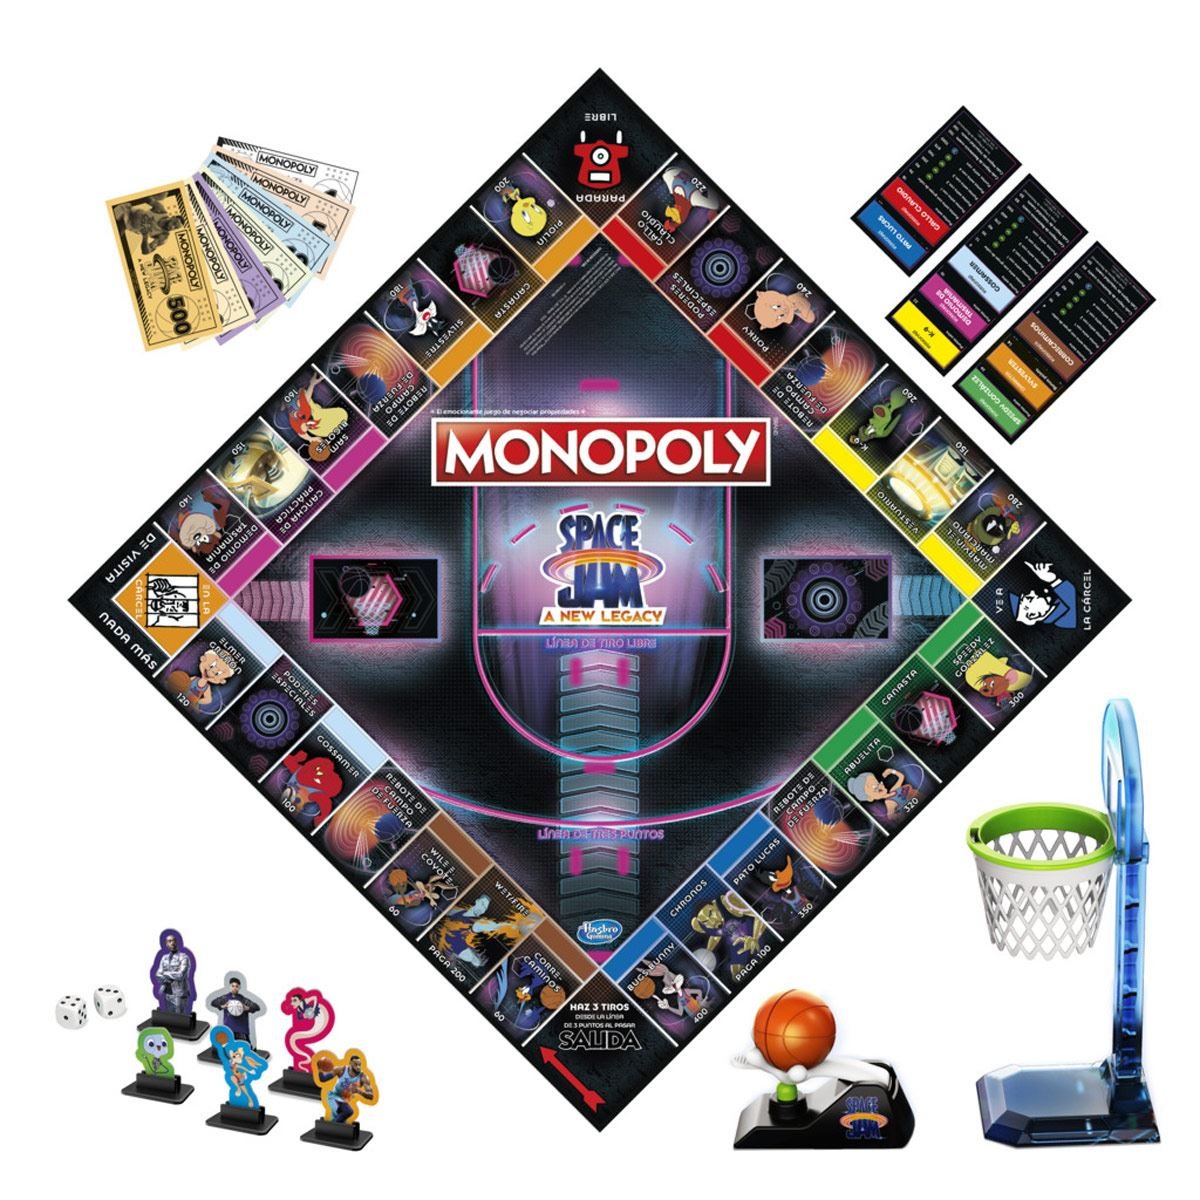 Monopoly: Space Jam A New Legacy